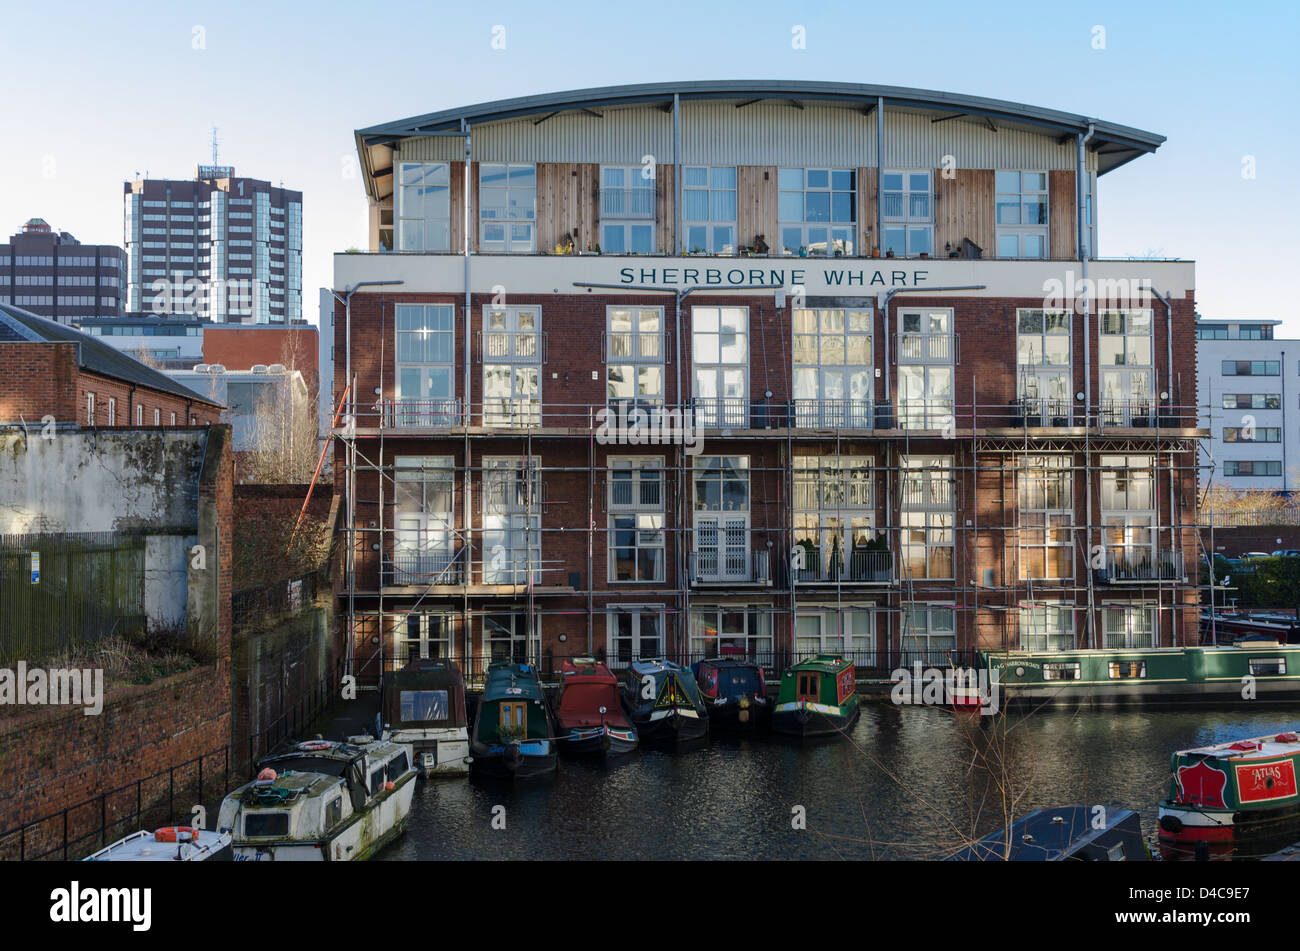 Sherborne Wharf Loft Appartments In Birmingham City Centre Stock Photo Royalty Free Image